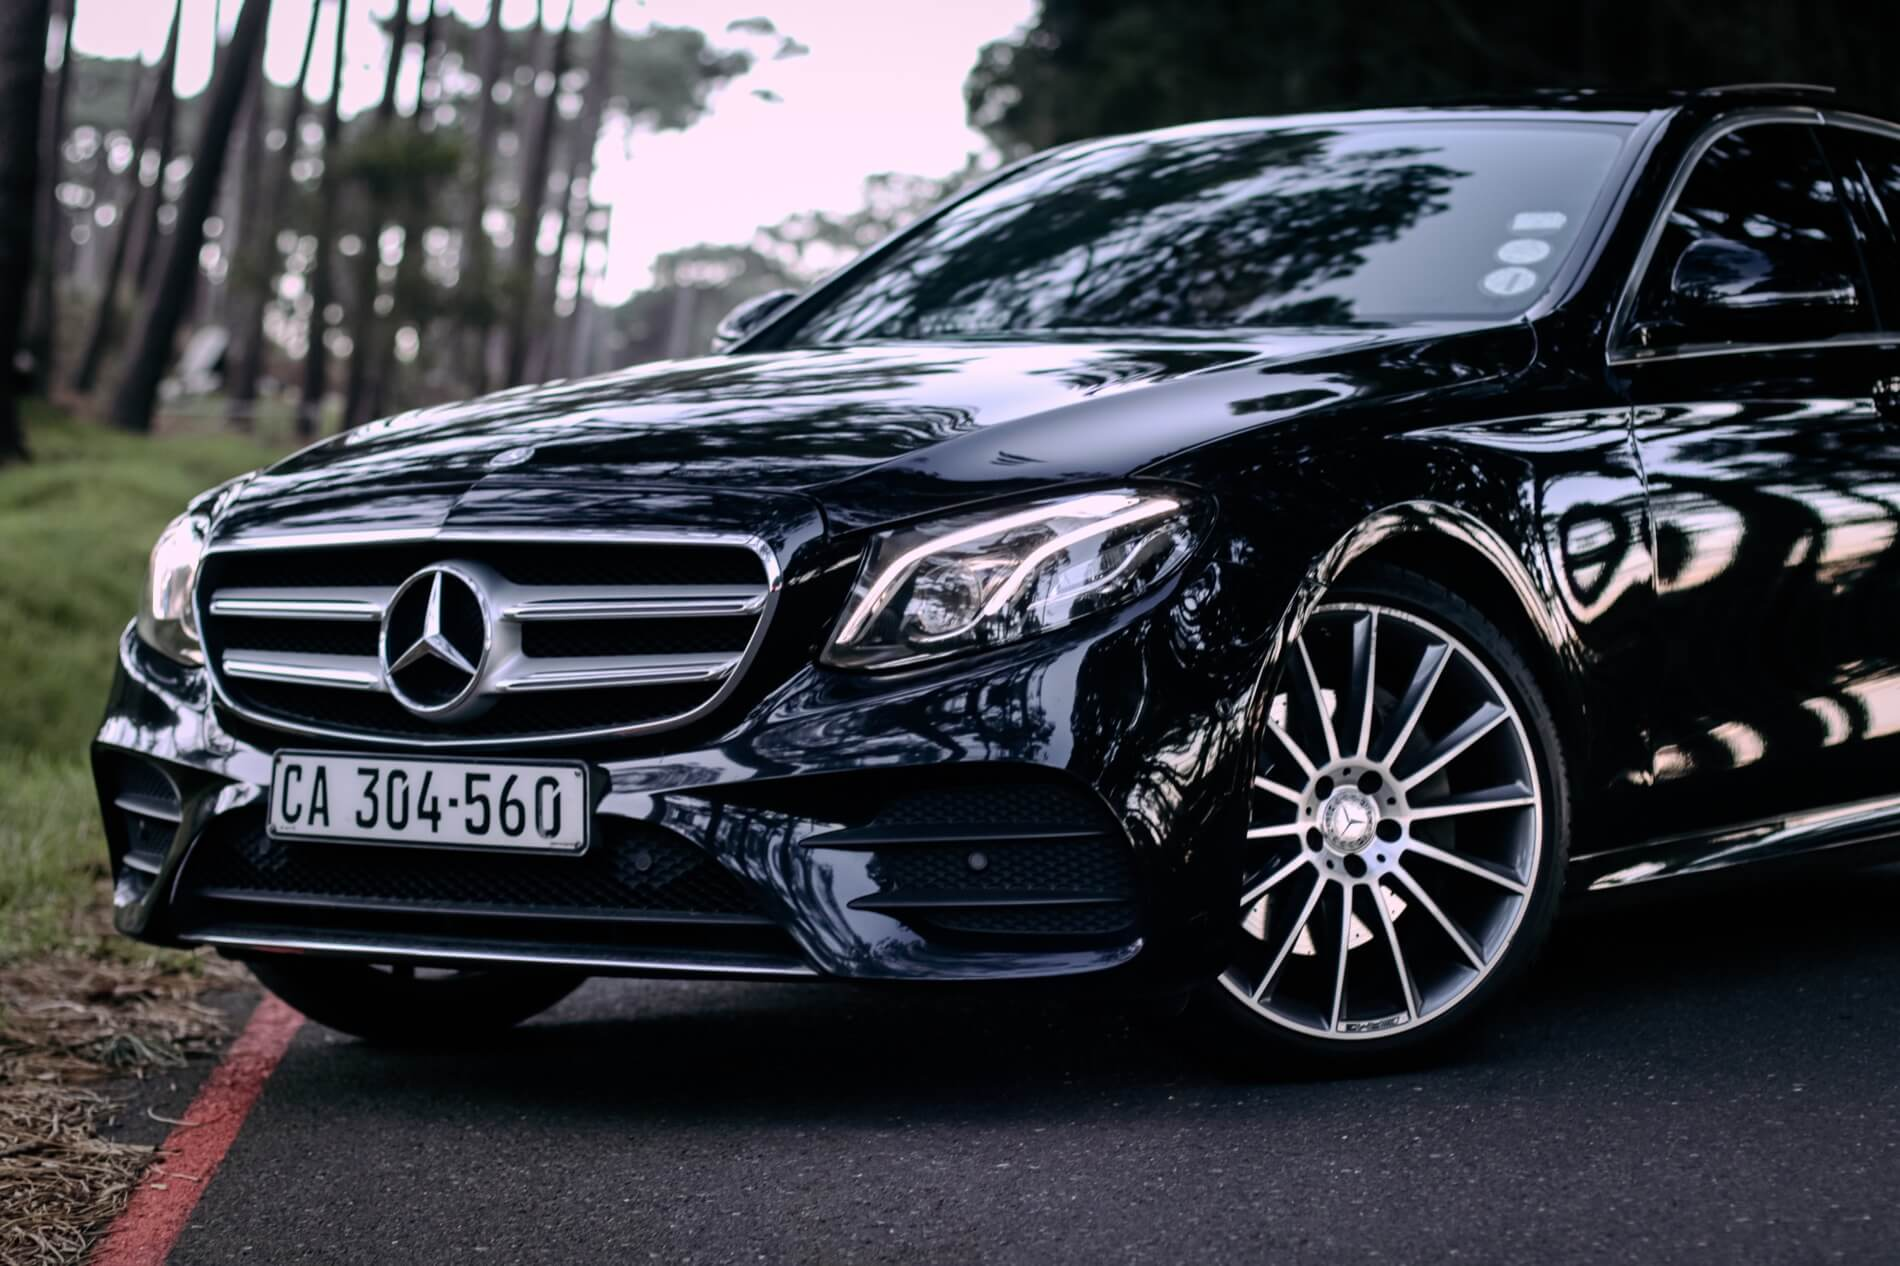 IMG_0523-SOHO-VIP-Luxury-Chauffeurs-in-Cape-Town-South-Africa